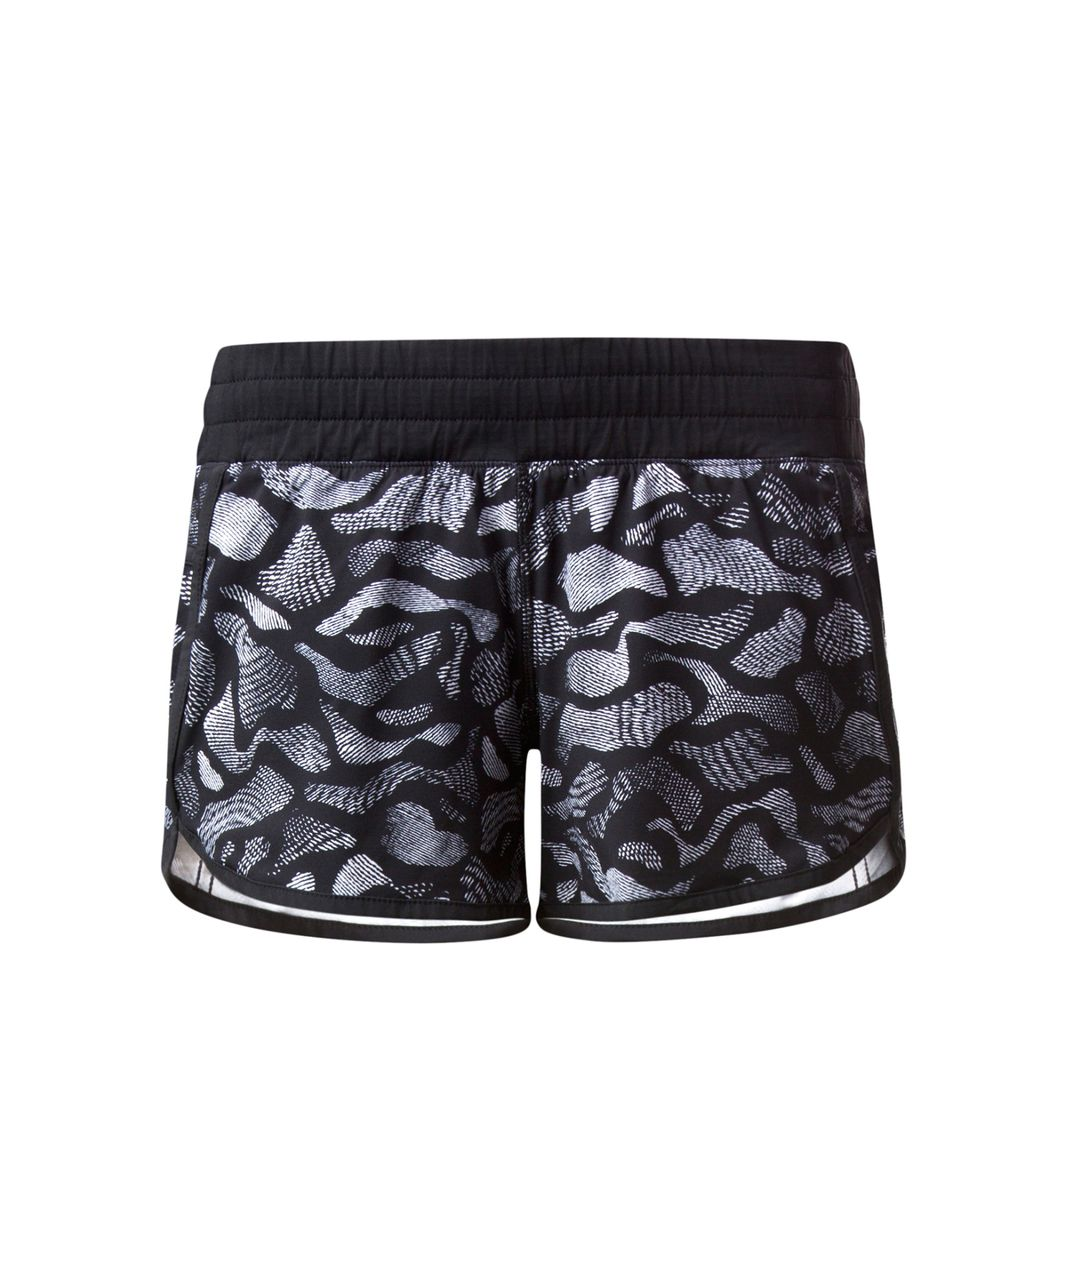 Lululemon Tracker Short IV - Mini Warp White Black / Black